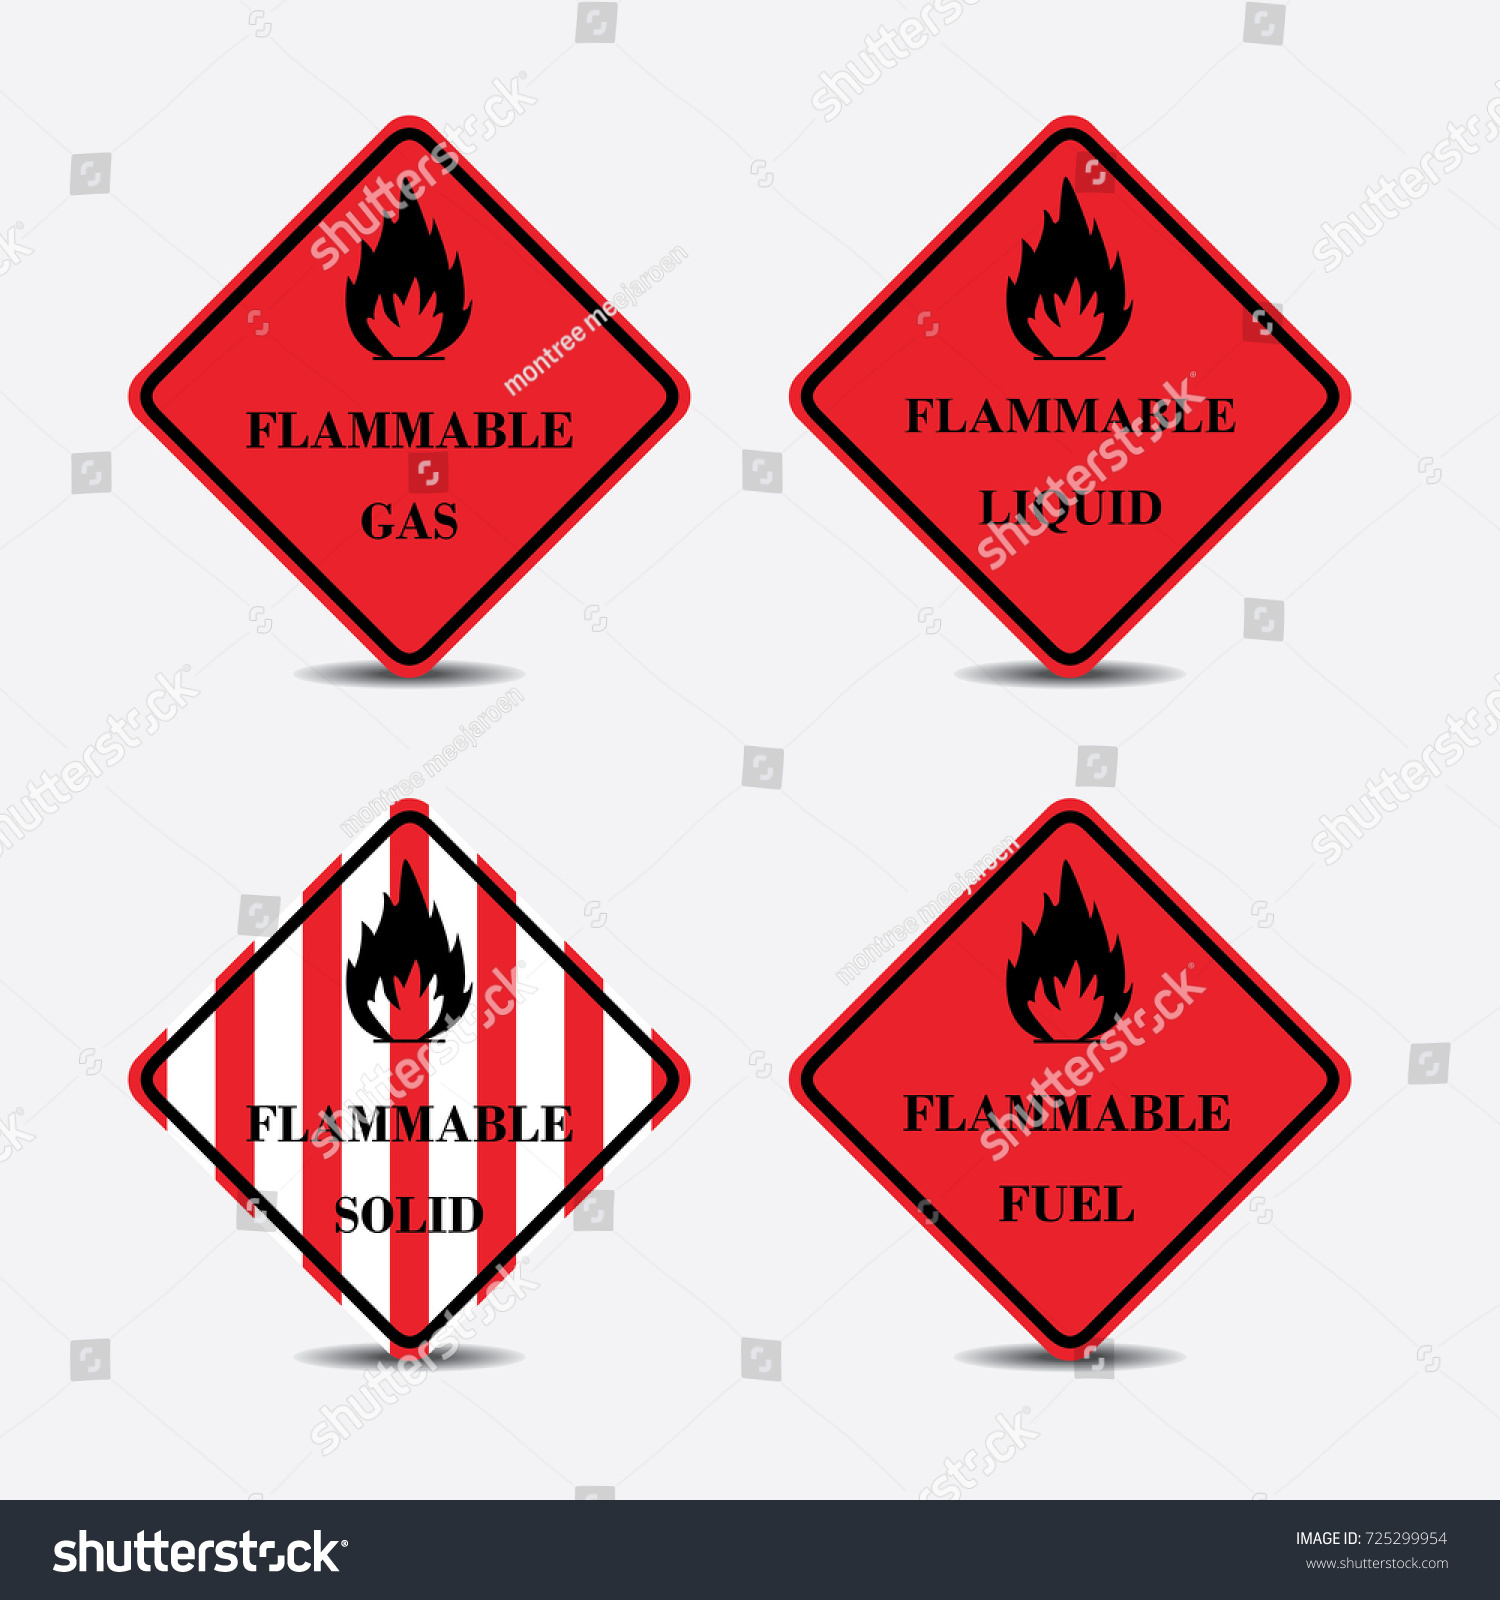 Sign Flammable Liquid Gas Solid Fuel Stock Vector Royalty Free